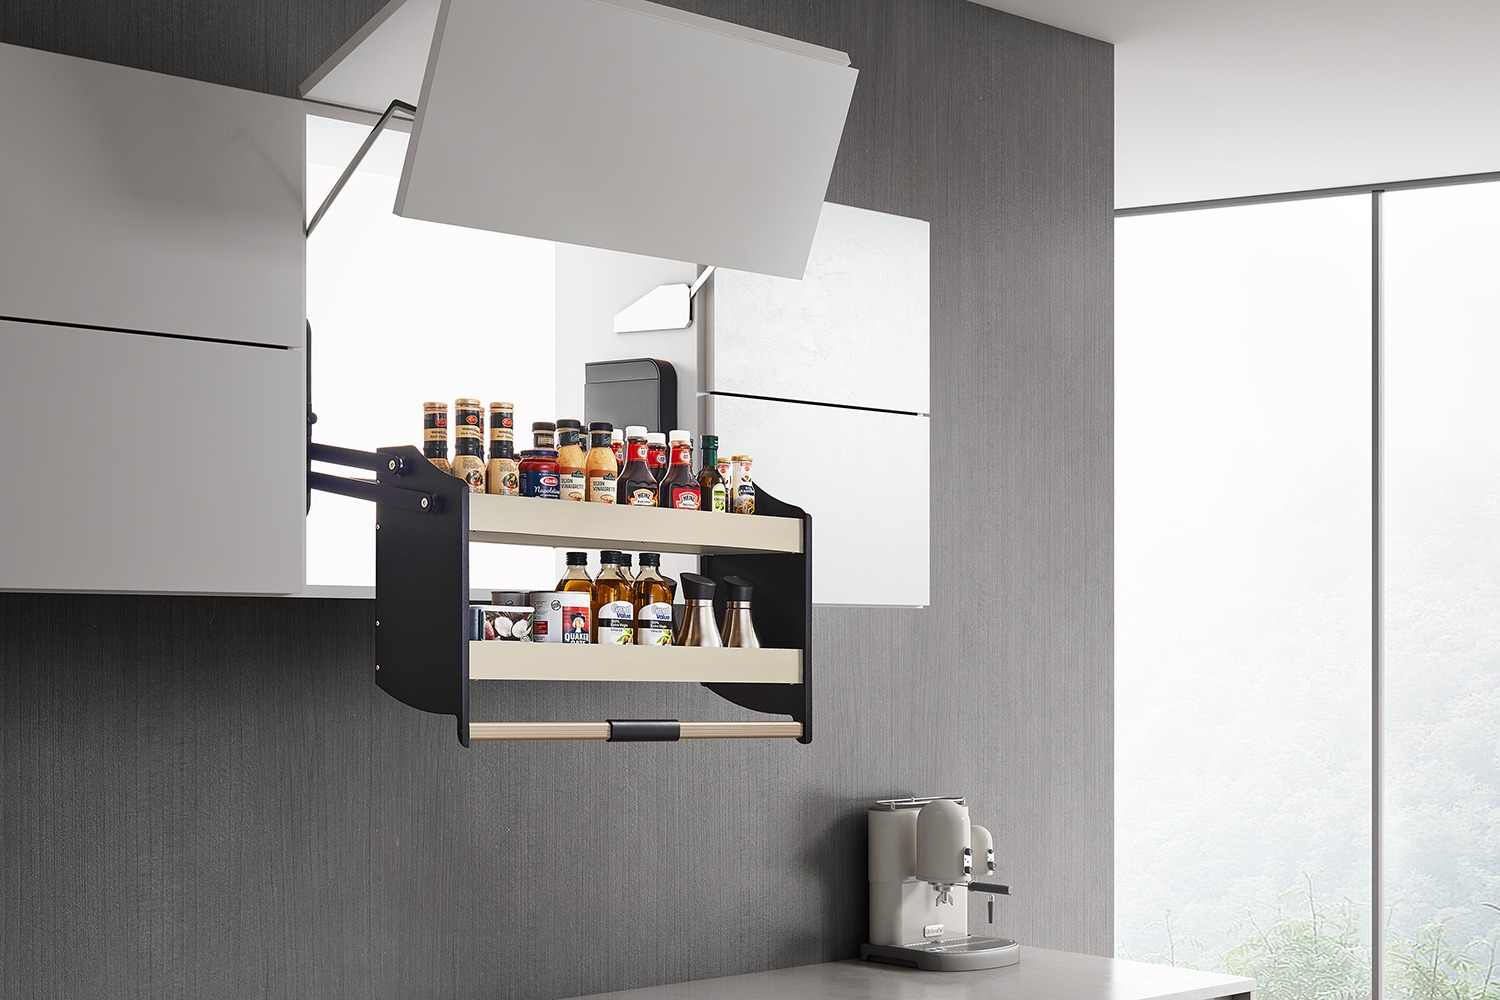 How The Cabinets With overhead lift systems Surpassing the Conventional Models